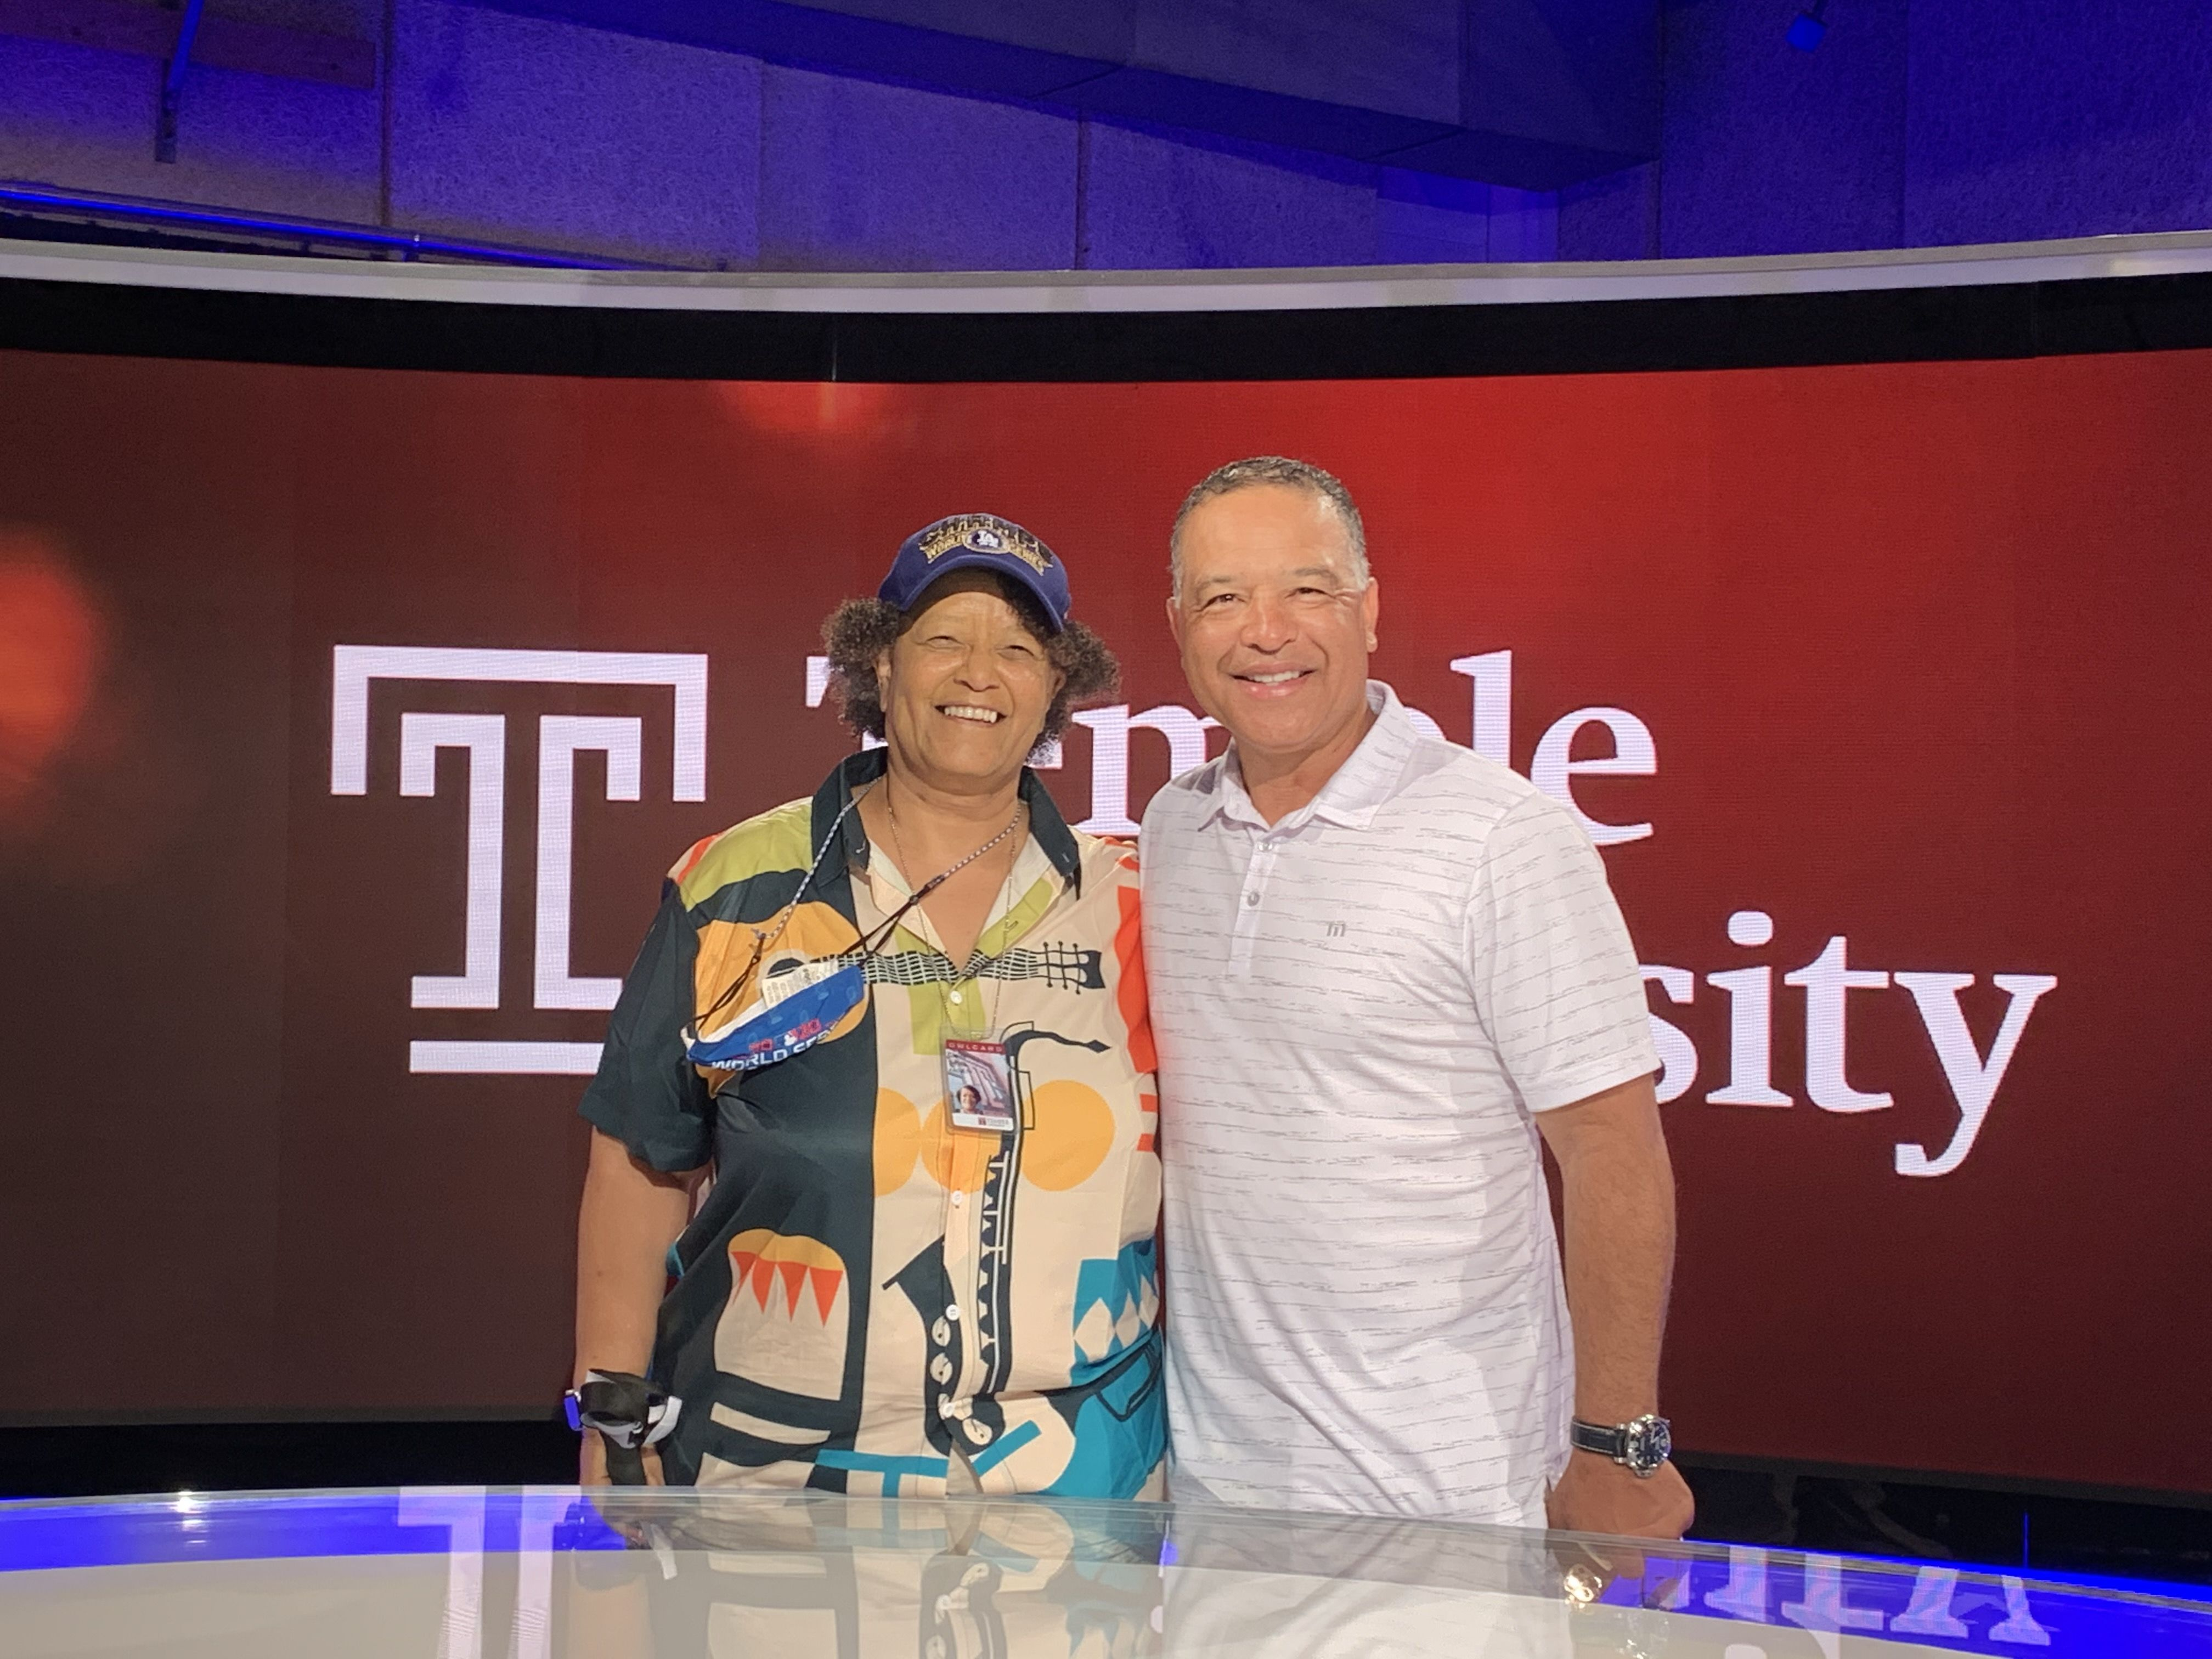 Dave Roberts, manager of the Dodgers and Claire at TUTV